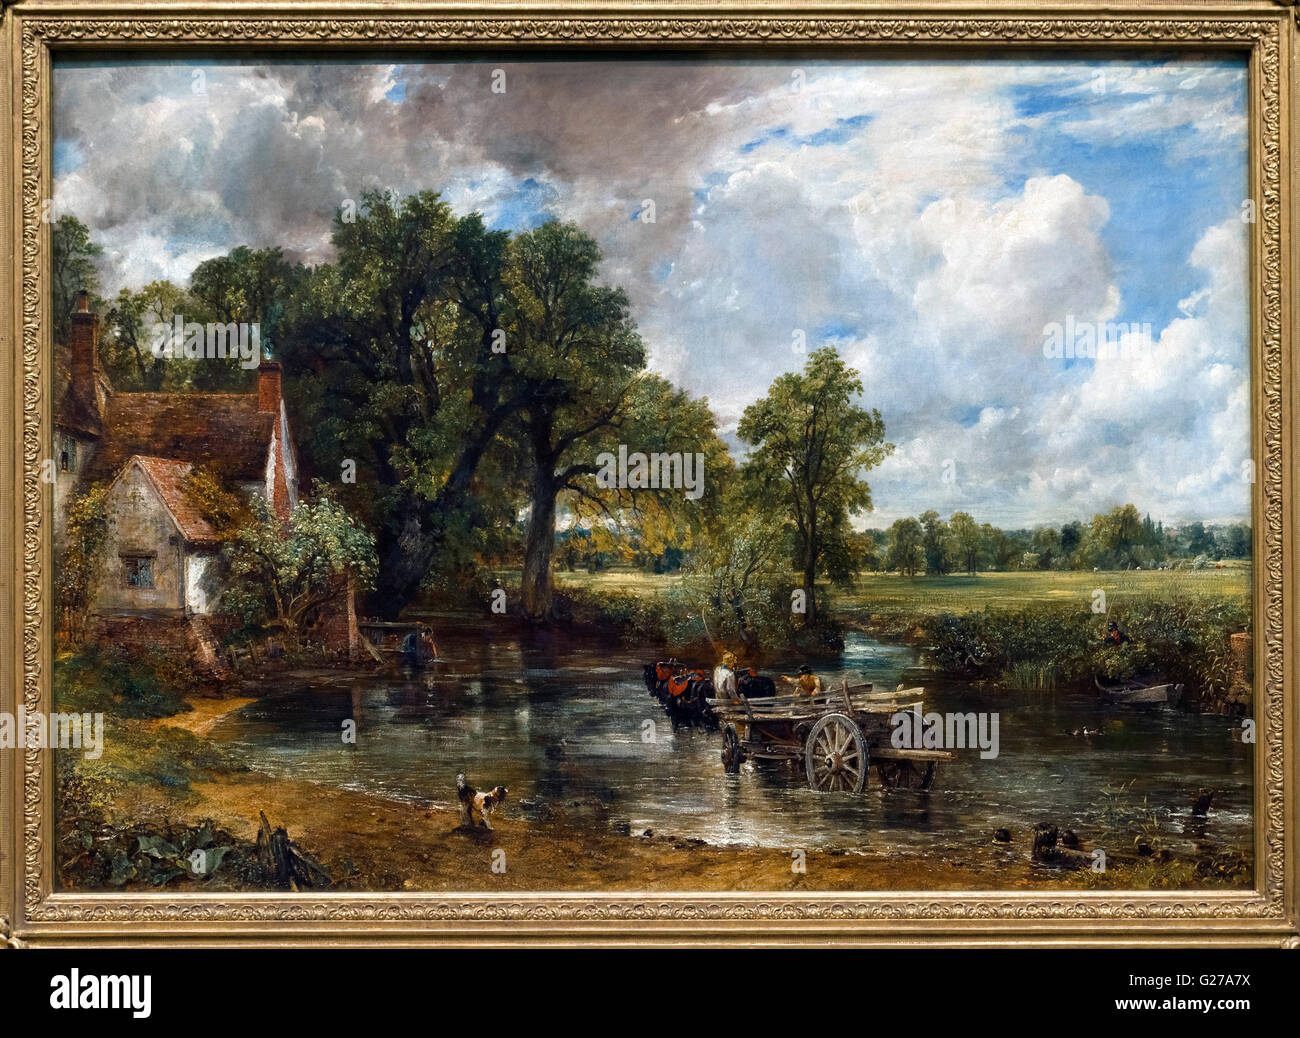 The Hay Wain by John Constable, oil on canvas, 1821. Stock Photo